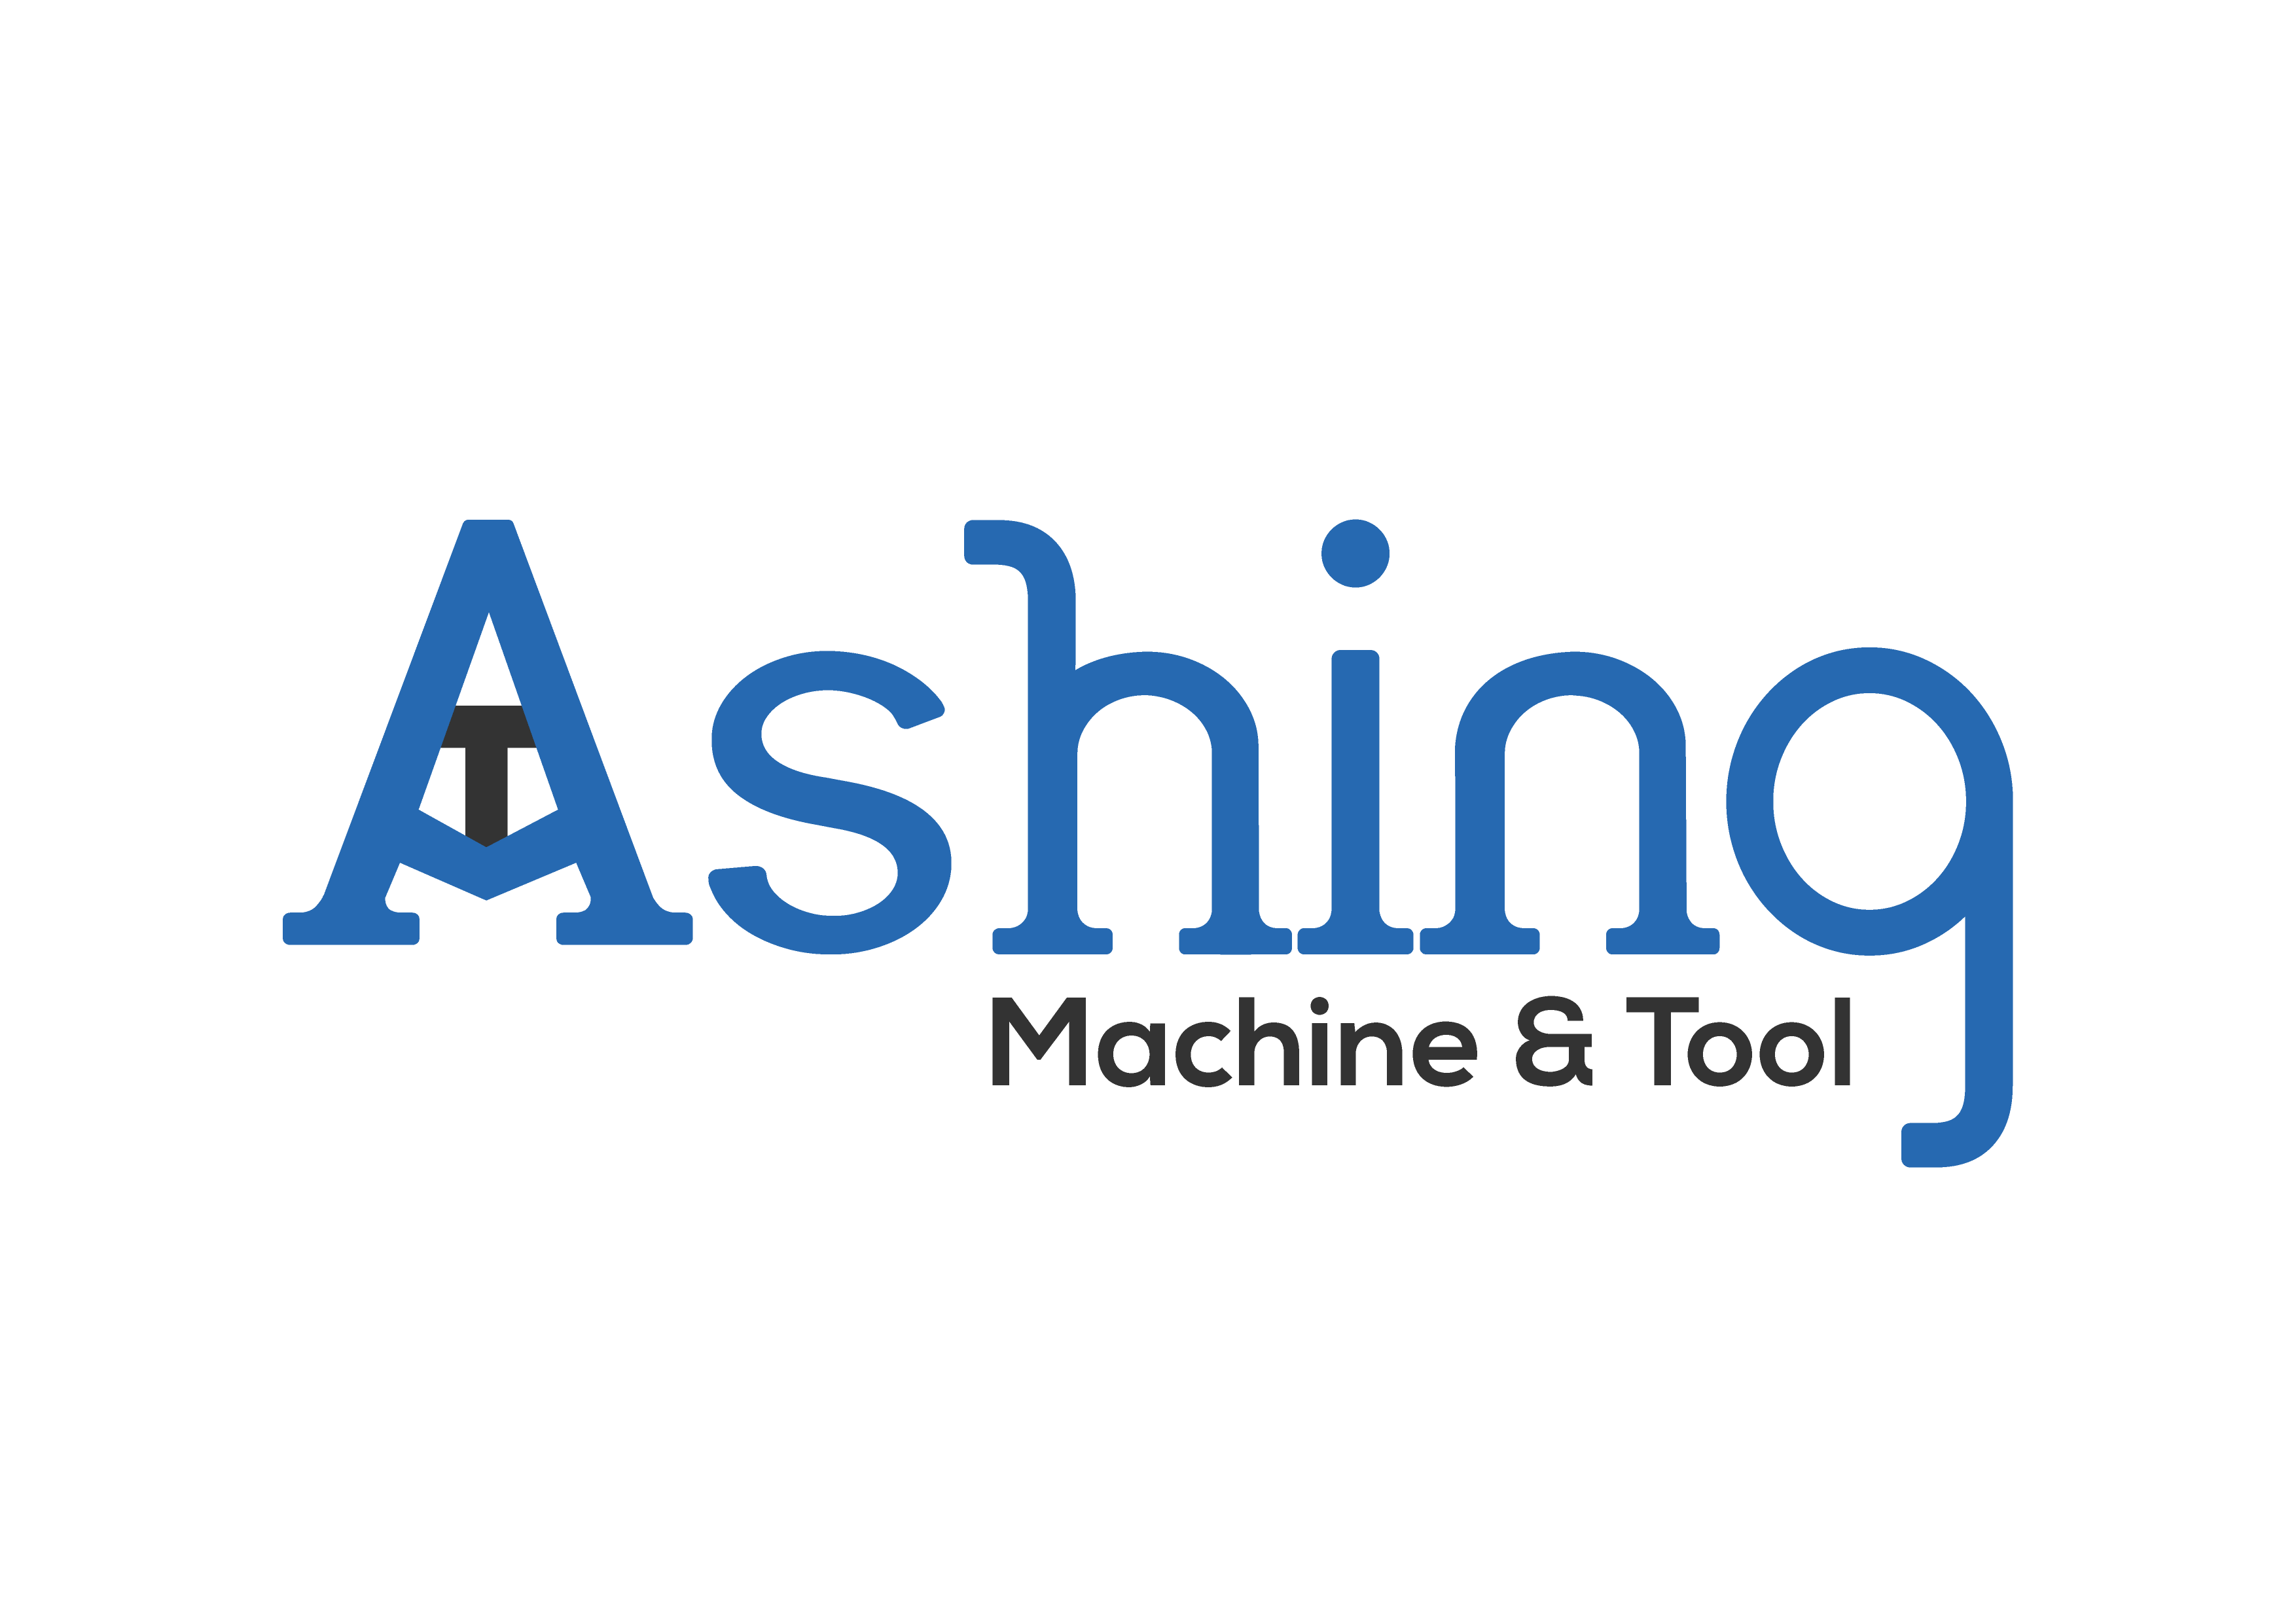 Ashing Machine & Tool Co.